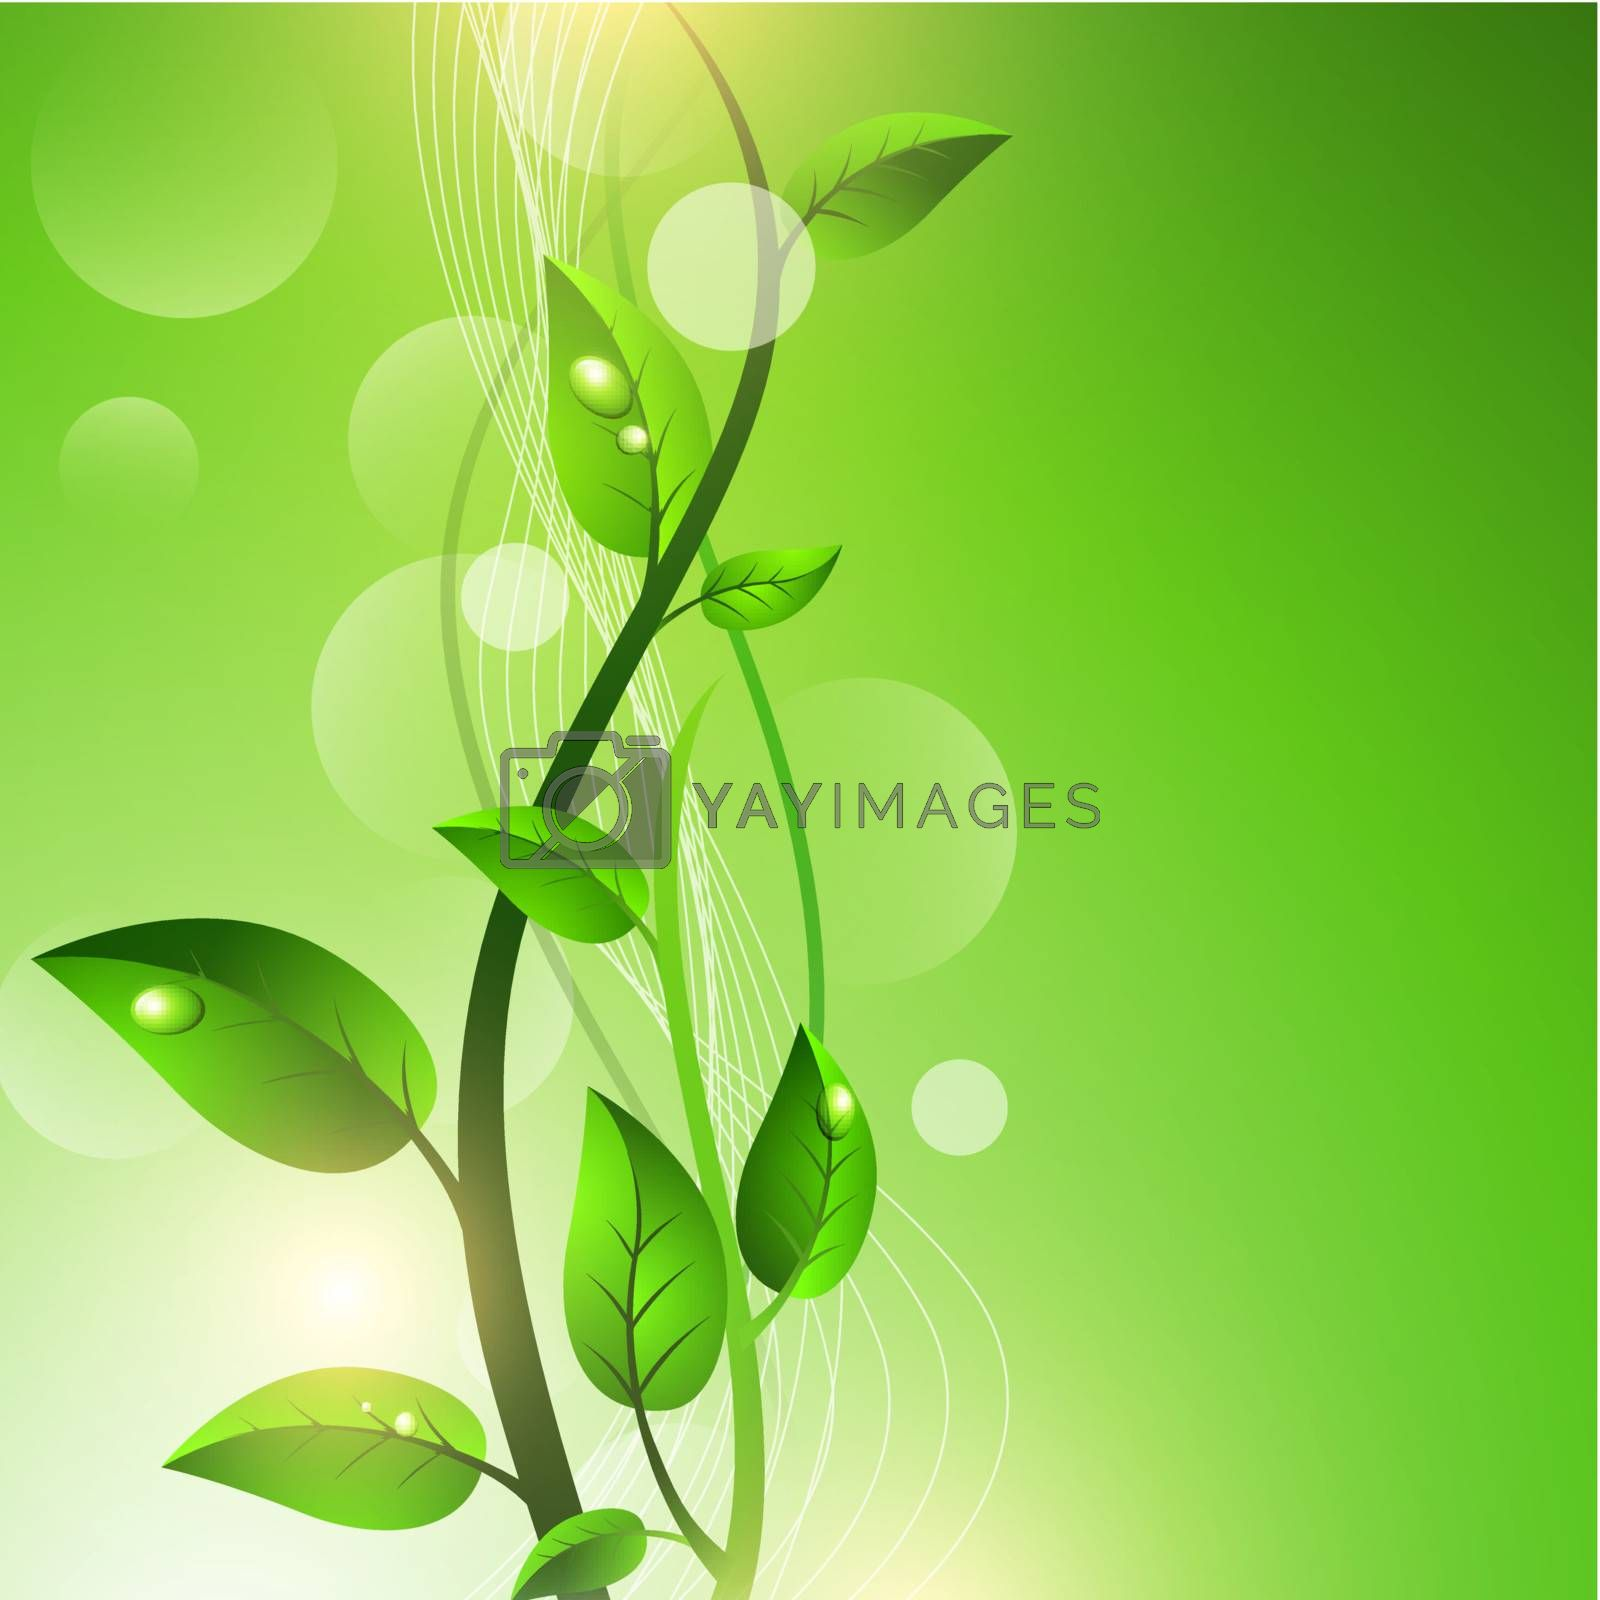 Green sprout with drops at leaves over fresh green background, copyspace for your text